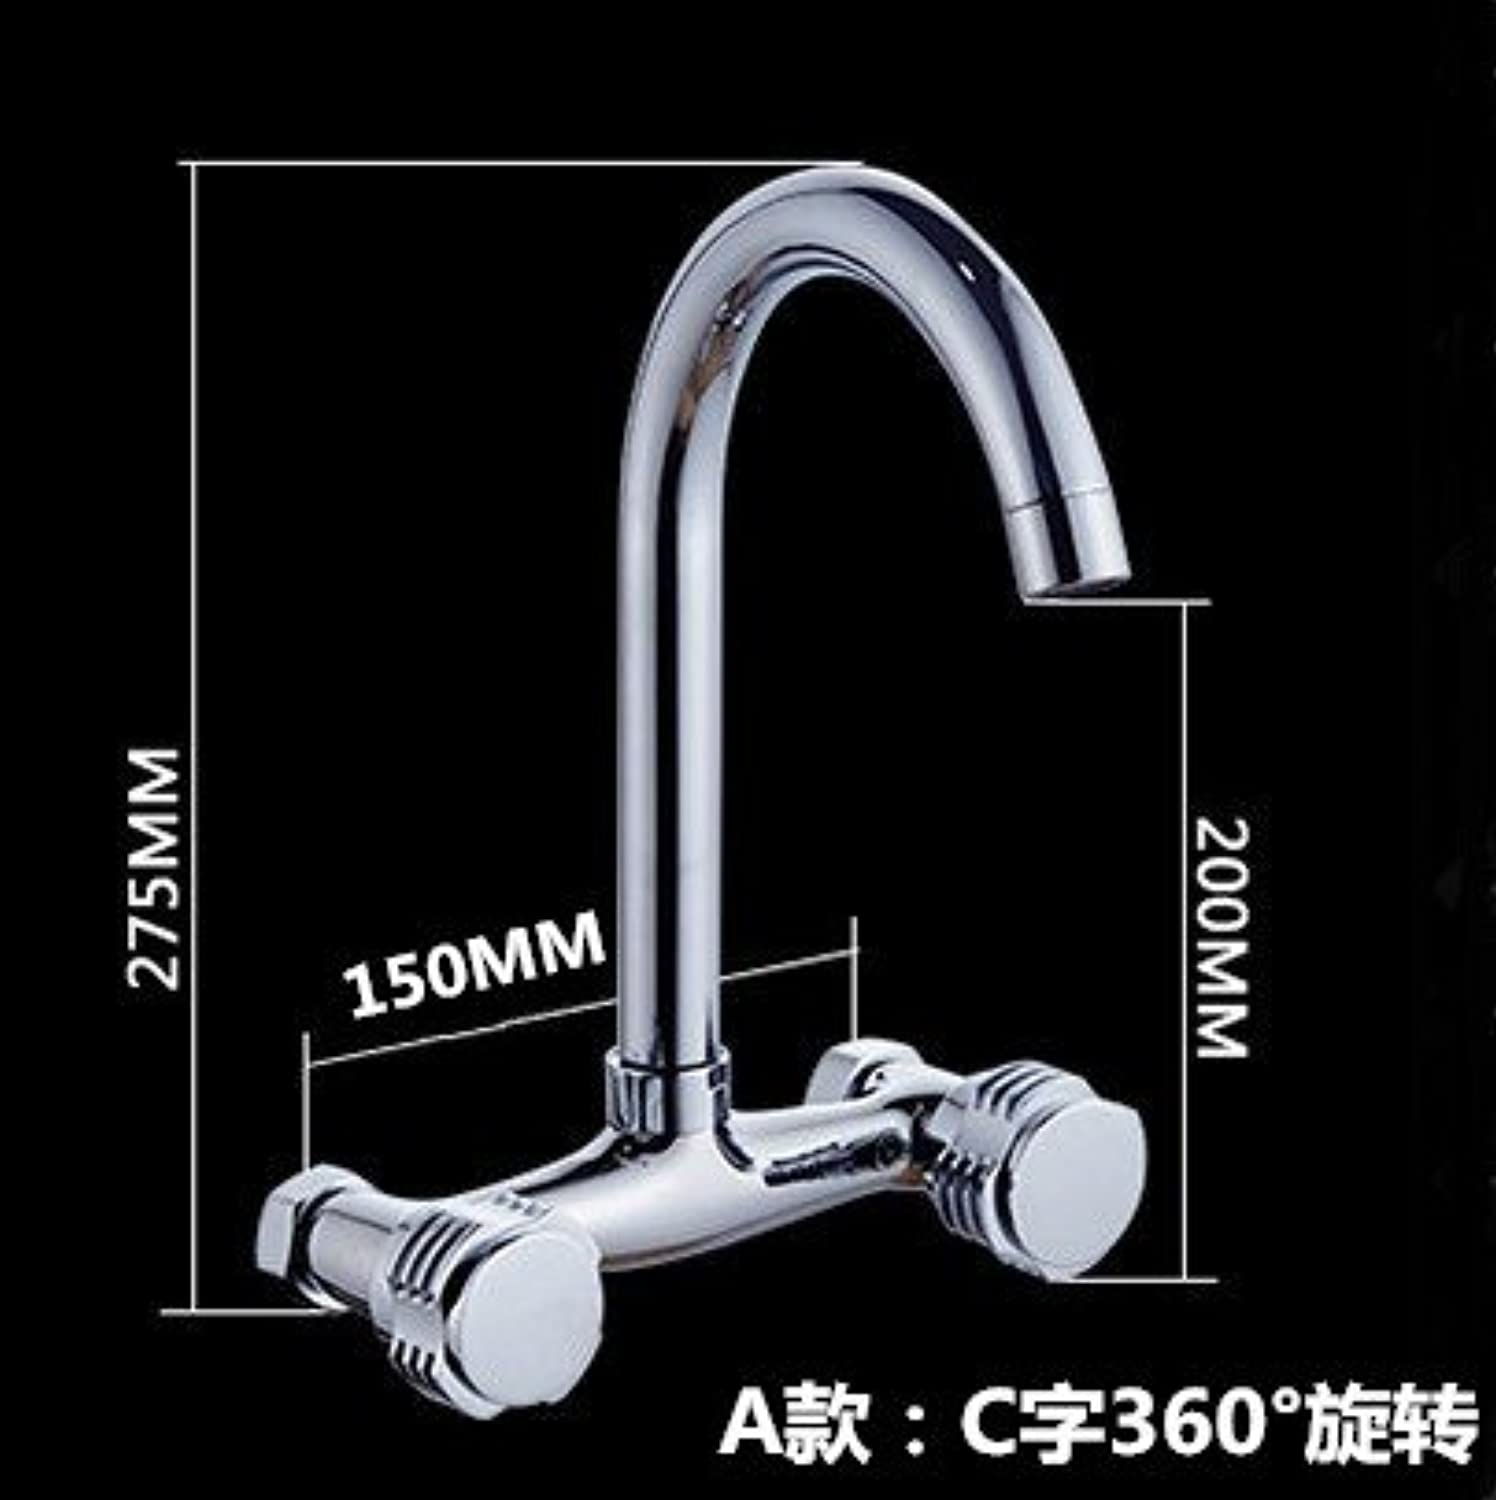 Lpophy Bathroom Sink Mixer Taps Faucet Bath Waterfall Cold and Hot Water Tap for Washroom Bathroom and Kitchen Copper in-Wall Wall Hot and Cold Water Double Hole A